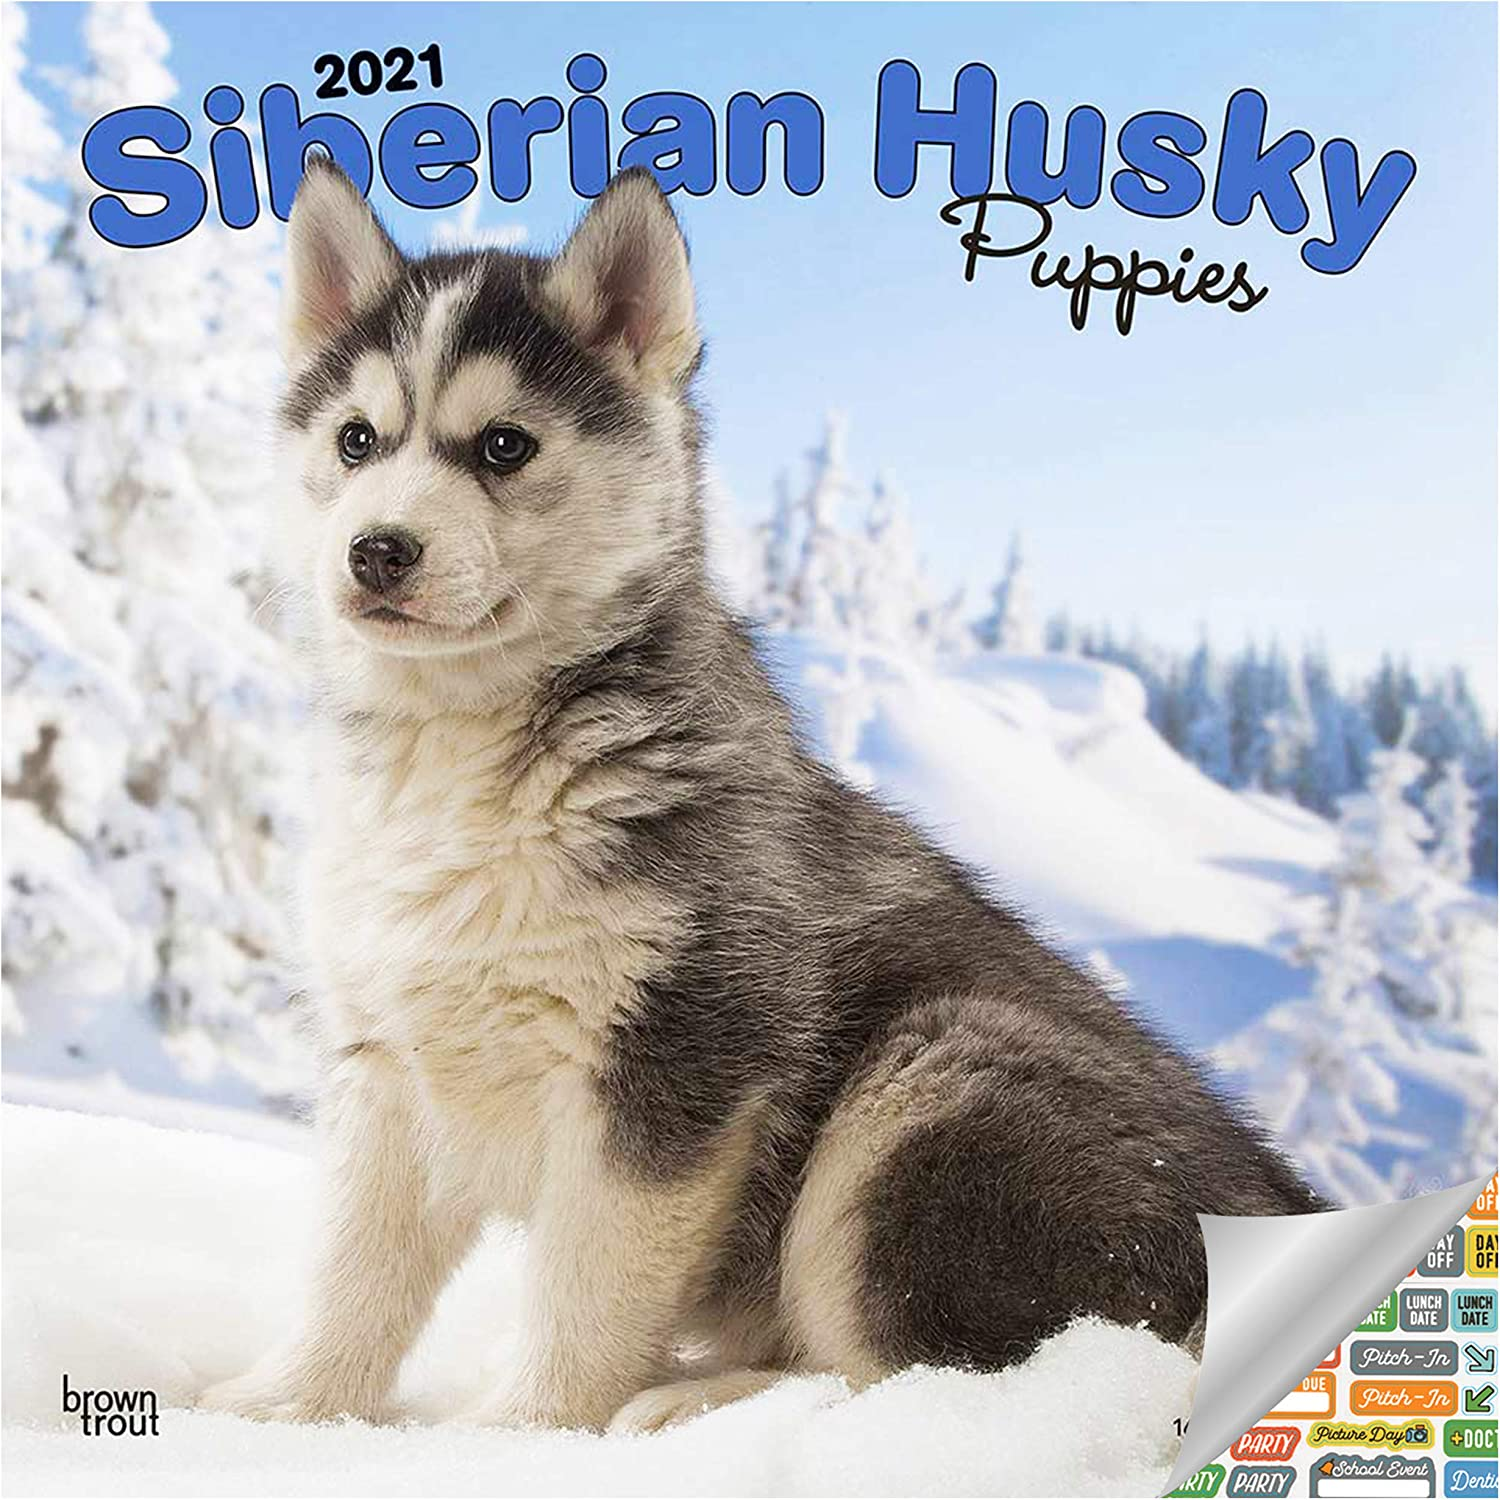 Siberian Husky Puppies Calendar 2021 Bundle - Deluxe 2021 Siberian Husky Puppies Wall Calendar with Over 100 Calendar Stickers (Dog Lovers Gifts, Office Supplies)